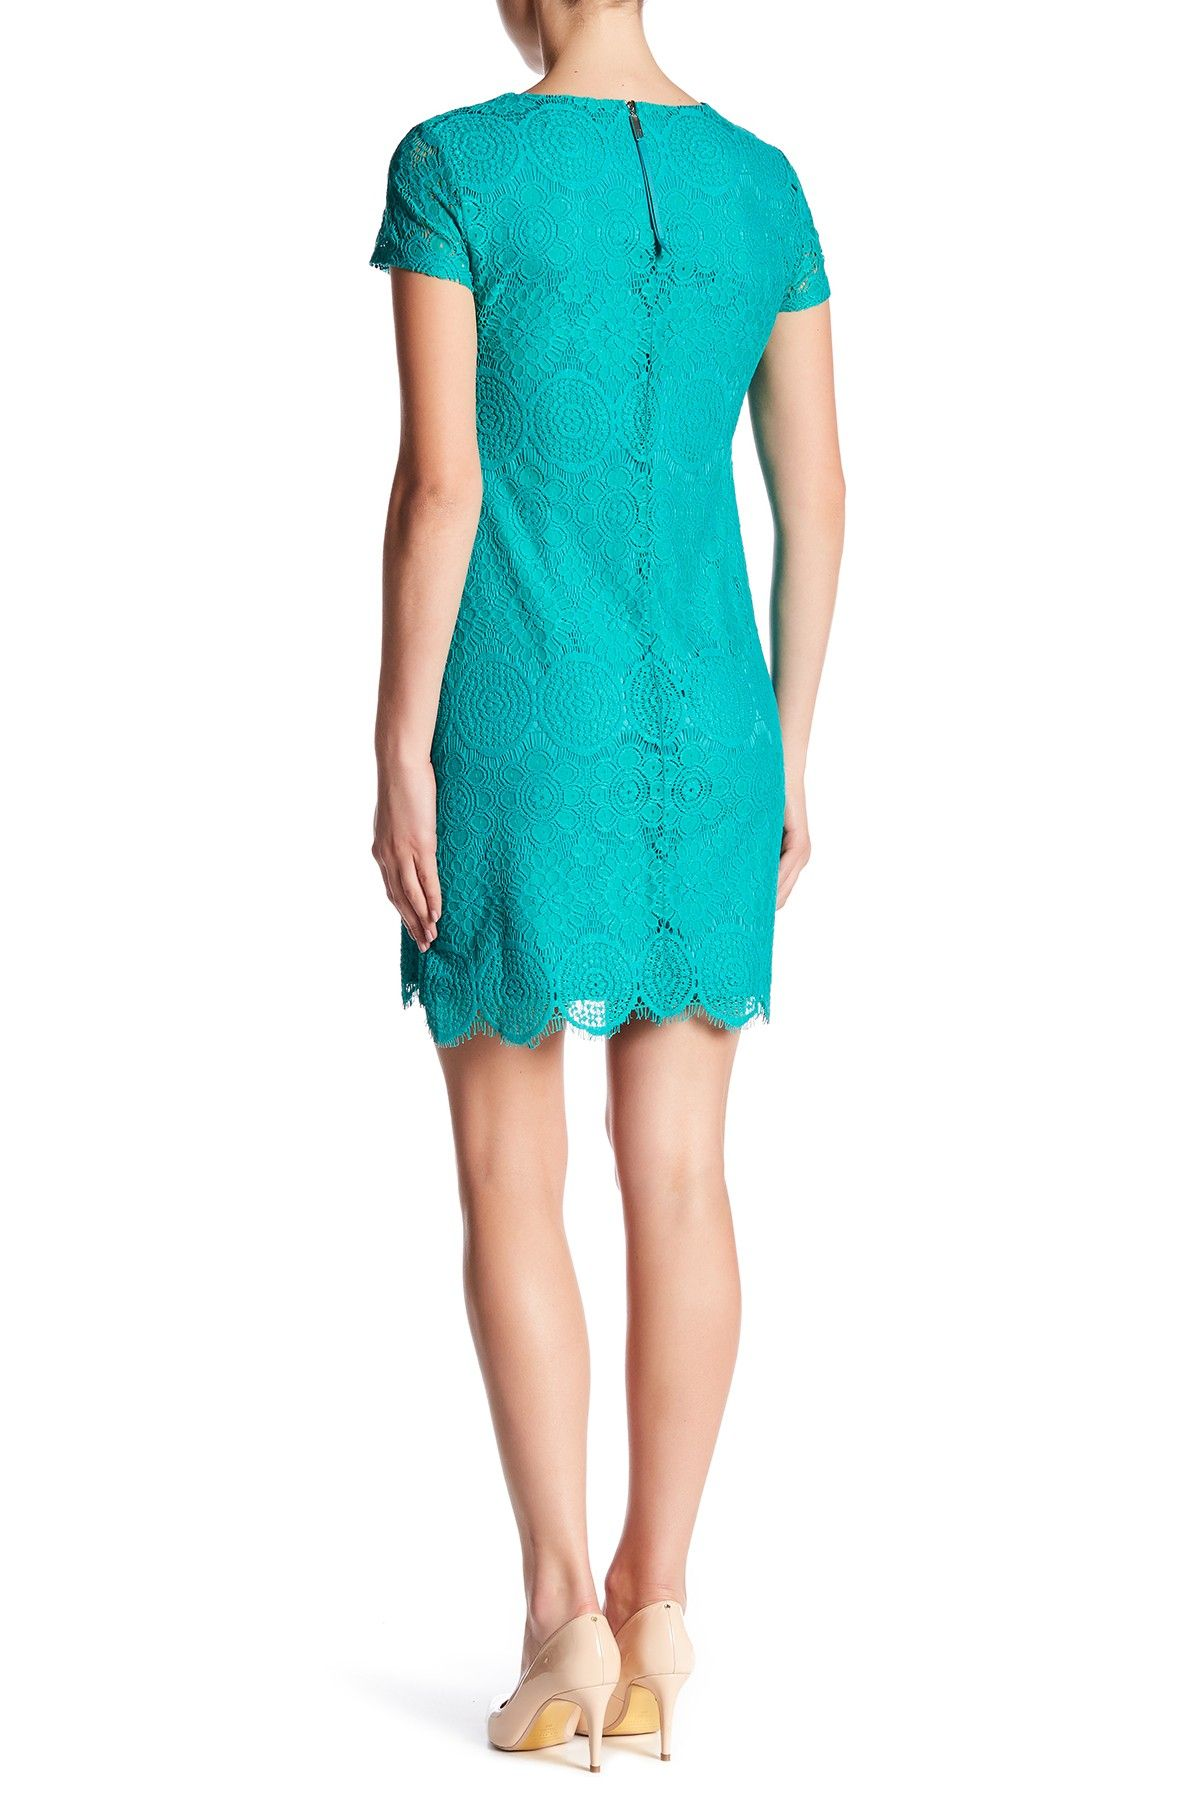 a5138a87456 Laundry By Shelli Segal | Short Sleeve Lace Shift Dress | Nordstrom Rack